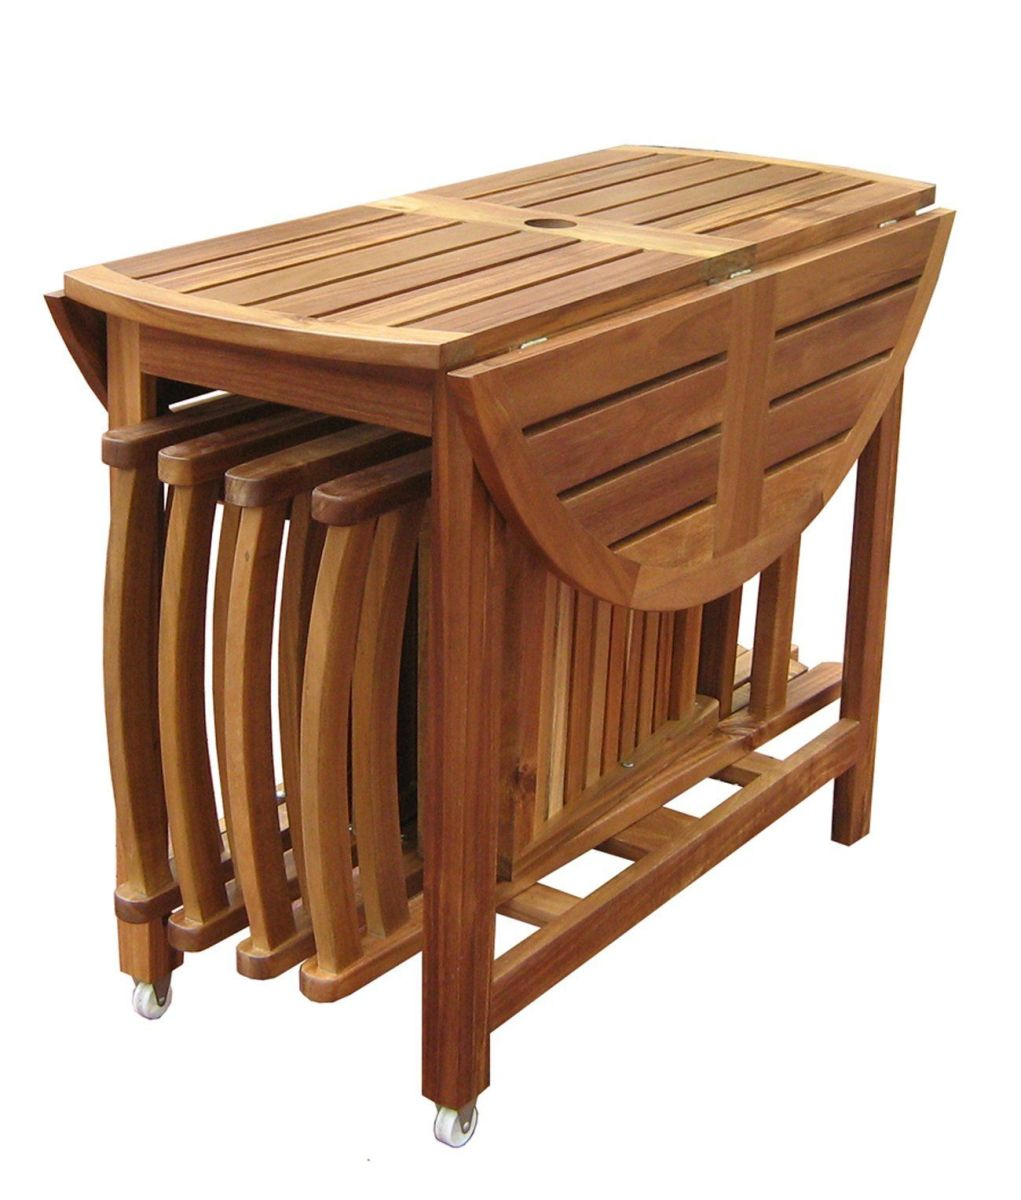 Outdoor Folding Table And Chairs